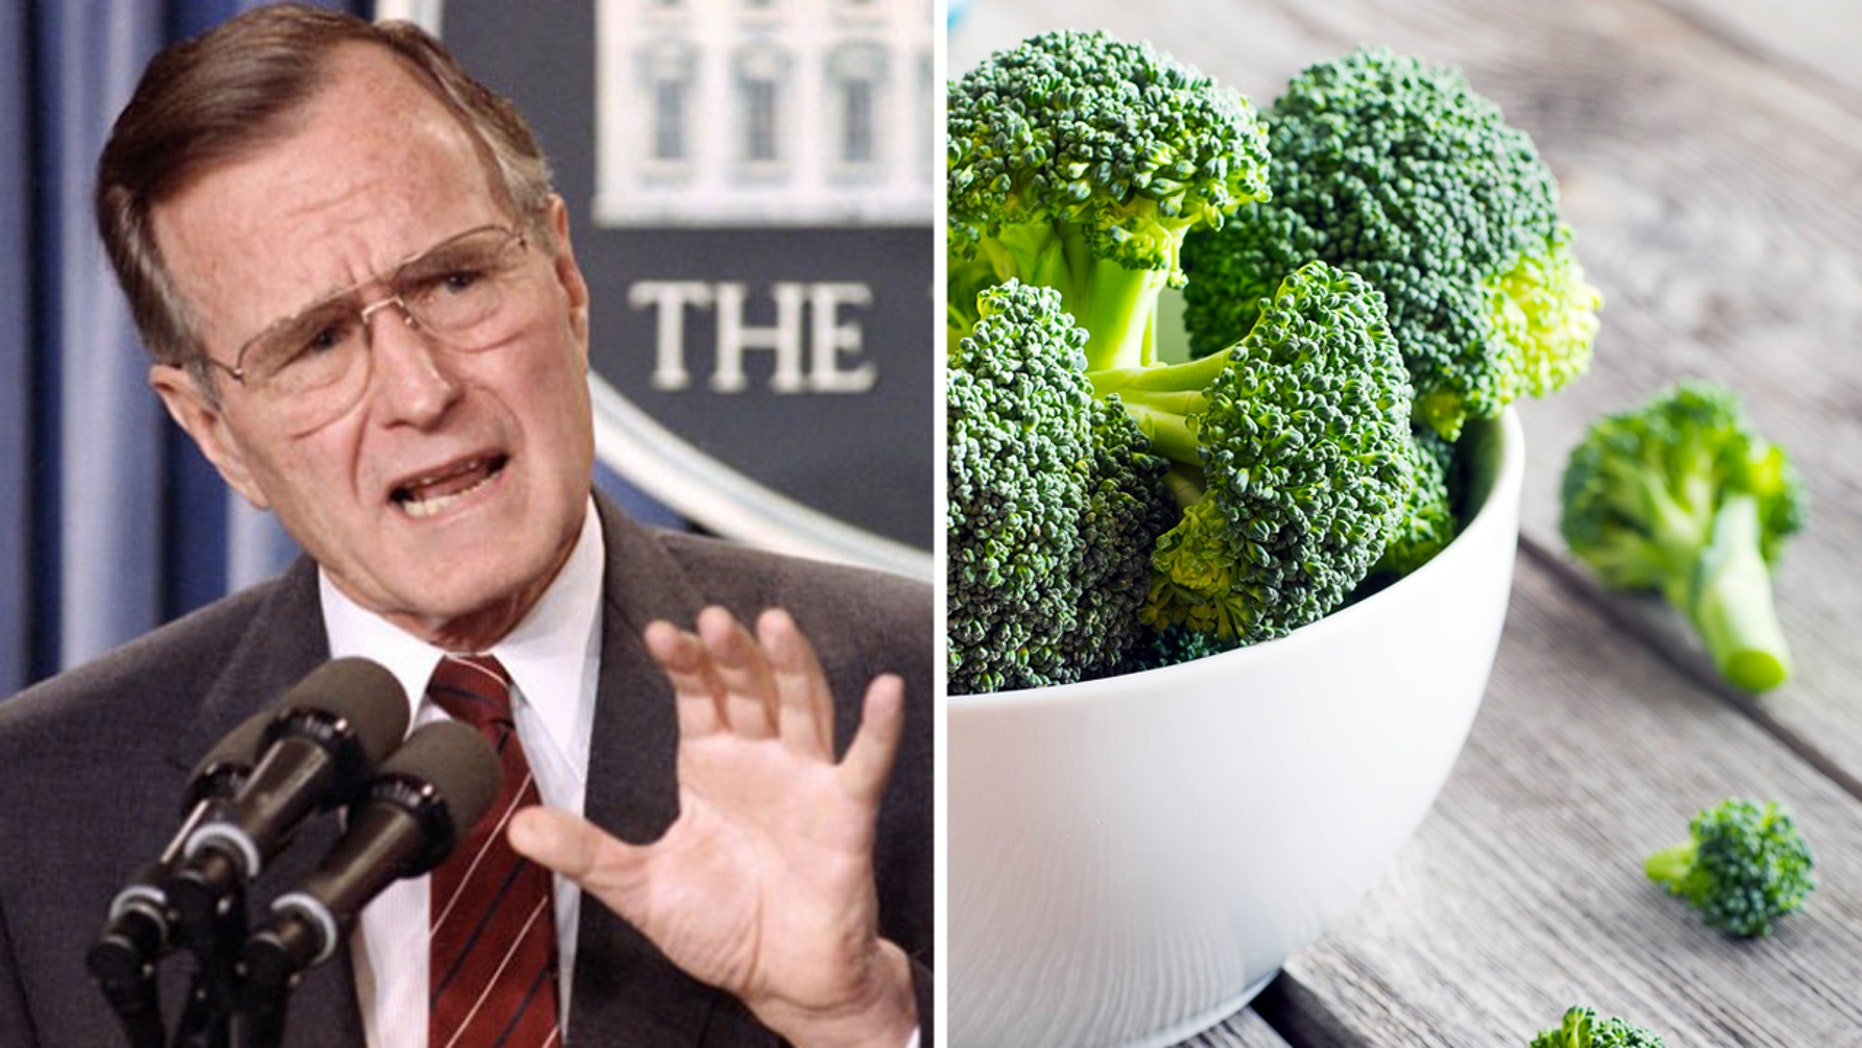 President George H.W. Bush won't be swayed to eat broccoli.